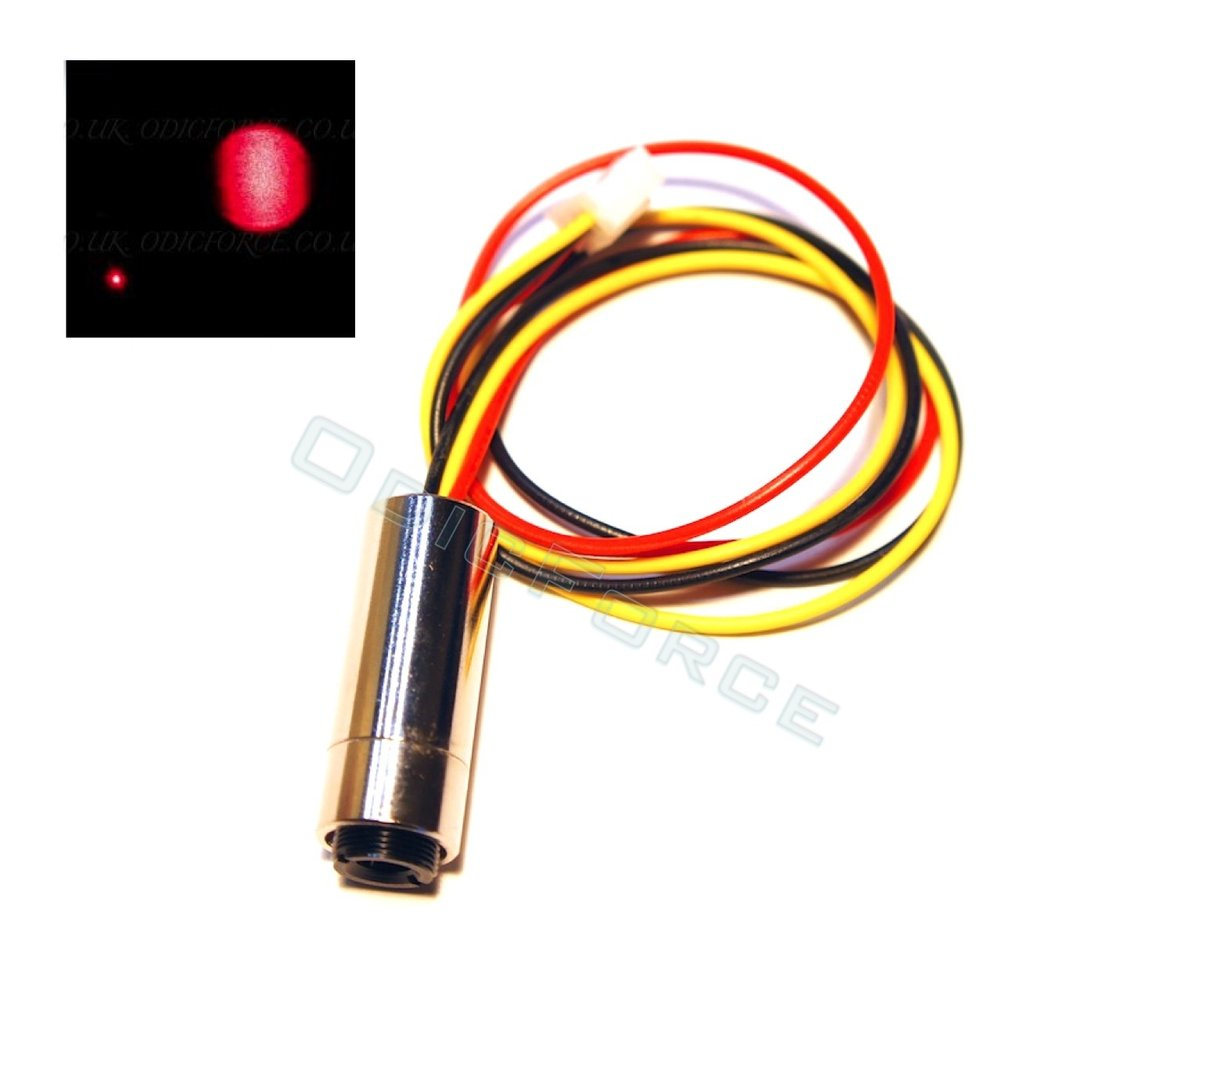 5mW Focusing Red (650nm) Laser Module (12mm) with TTL Driver